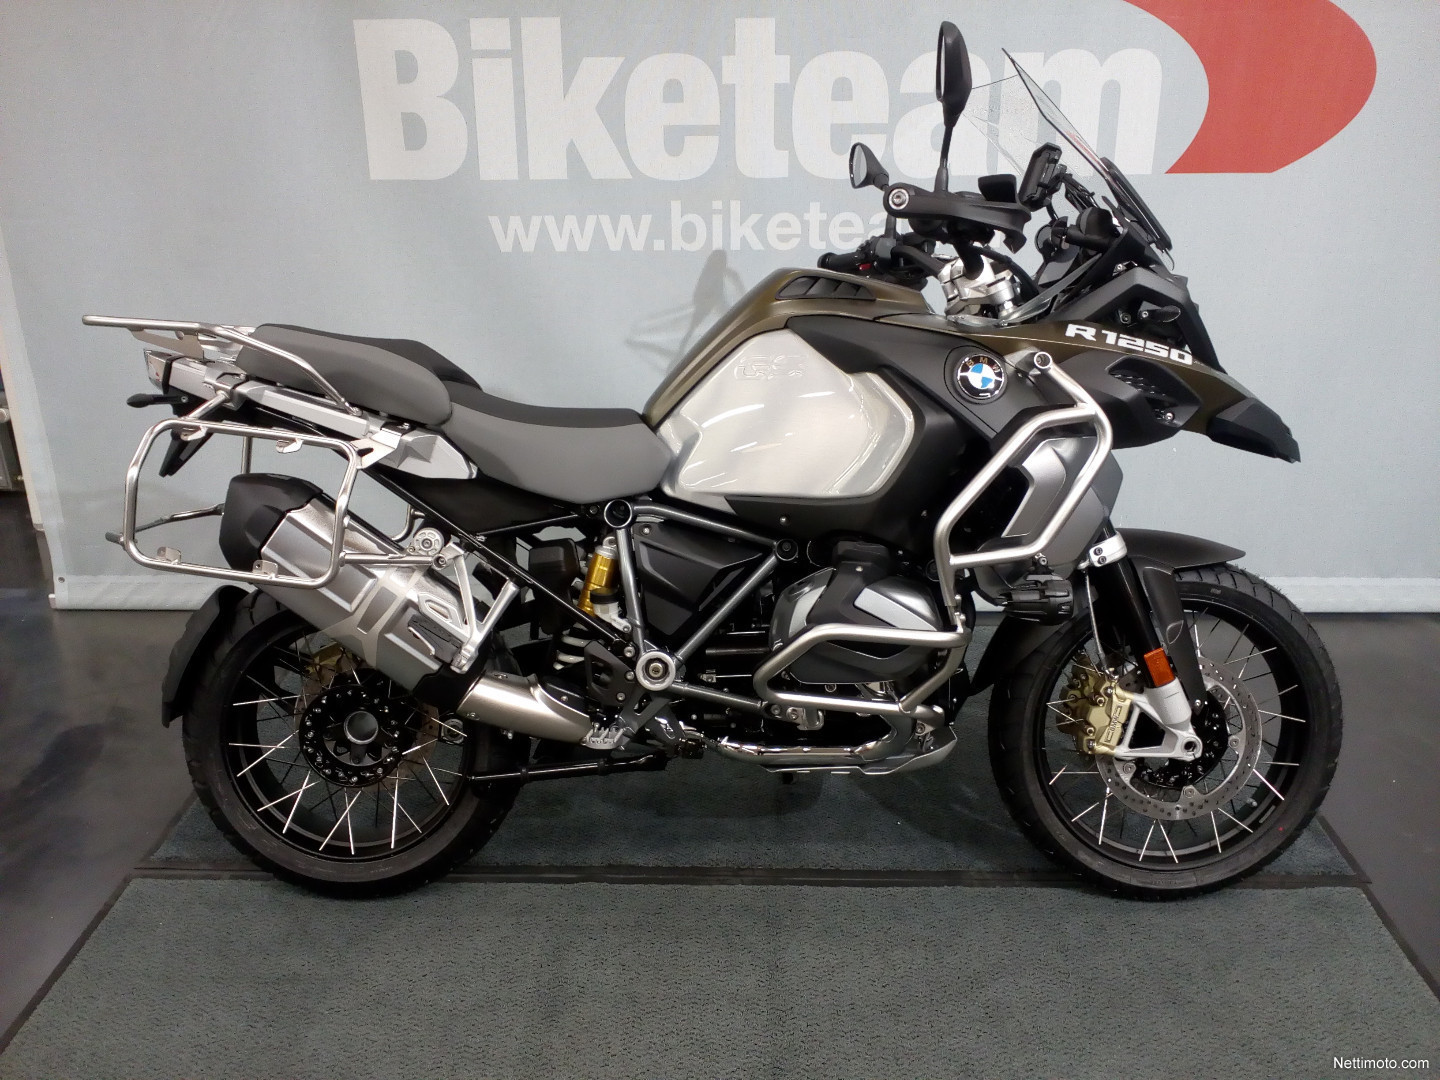 bmw r 1250 gs adventure exclusive 1 300 cm 2019 raisio motorcycle nettimoto. Black Bedroom Furniture Sets. Home Design Ideas